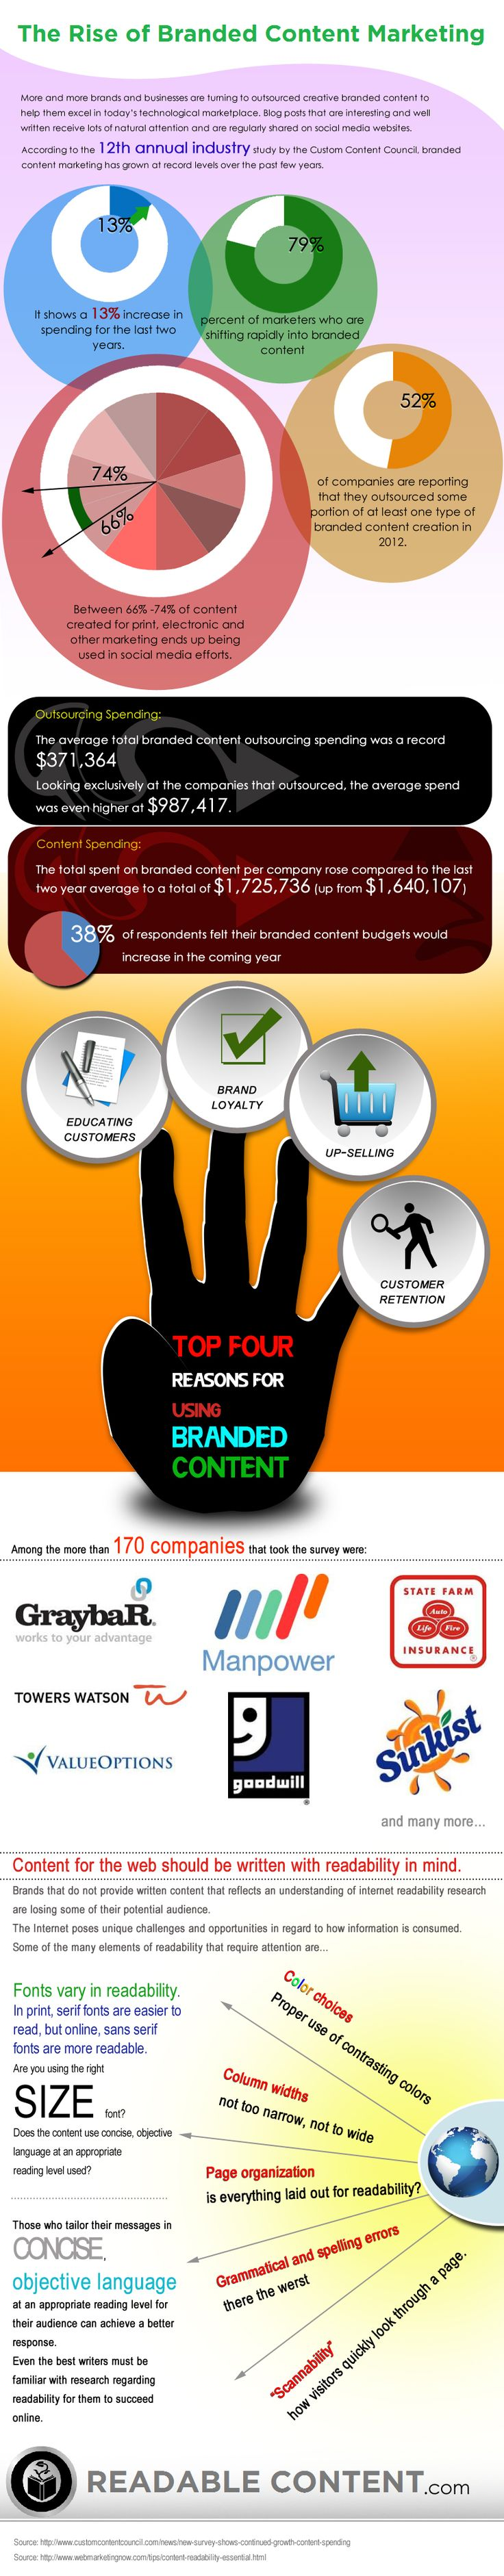 2017 06 fashionplaytes design studio - The Rise Of Branded Content In Marketing A Business Infographic